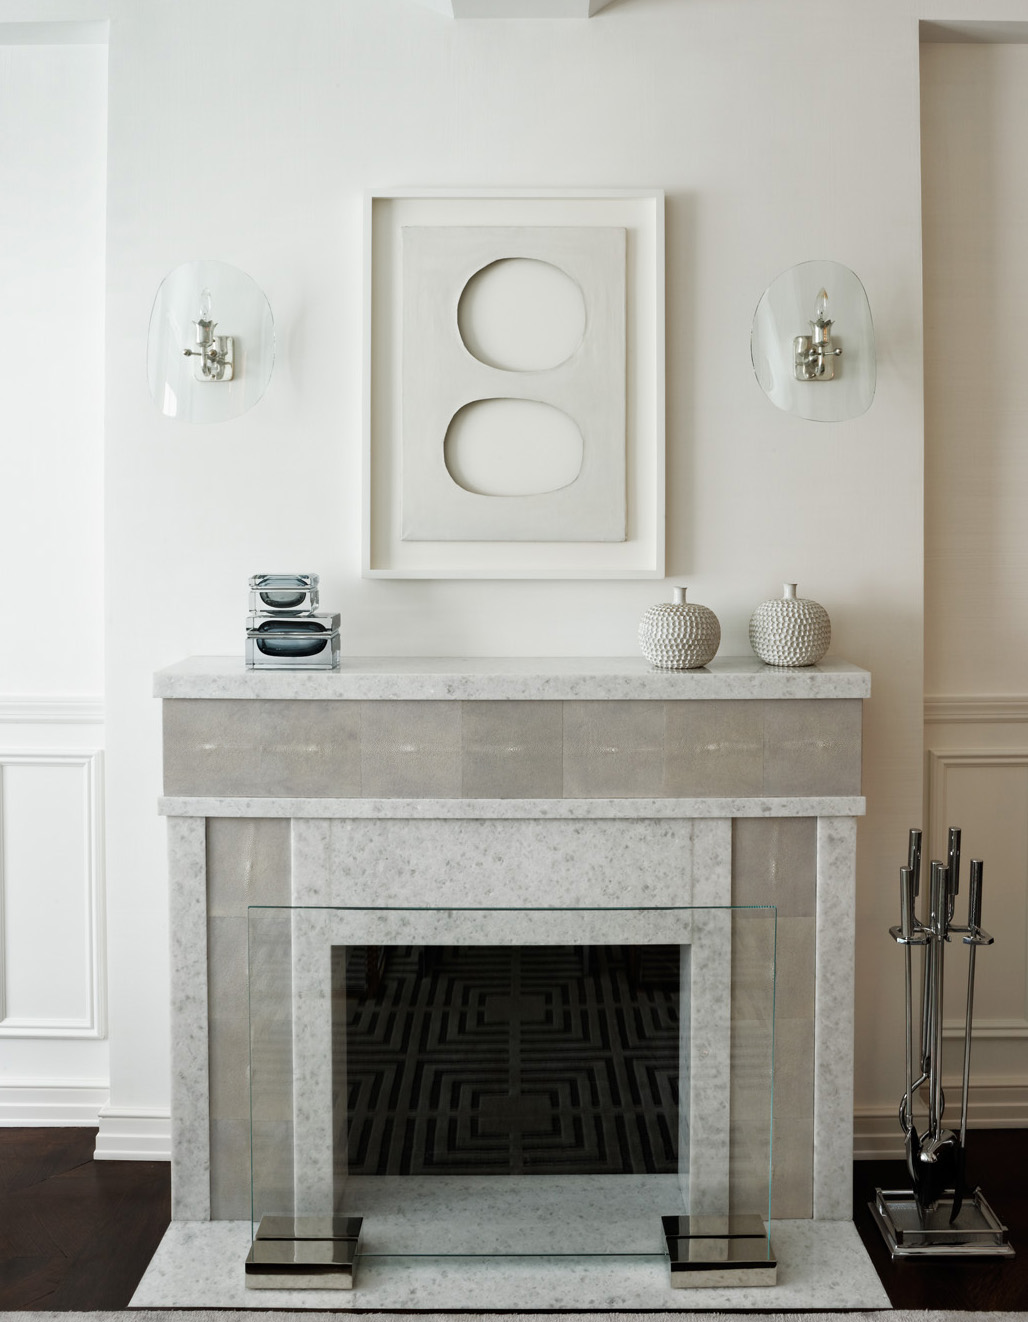 dessins created this shagreen and marble unique fireplace surround by Penny Drue Baird - Dessins LLC